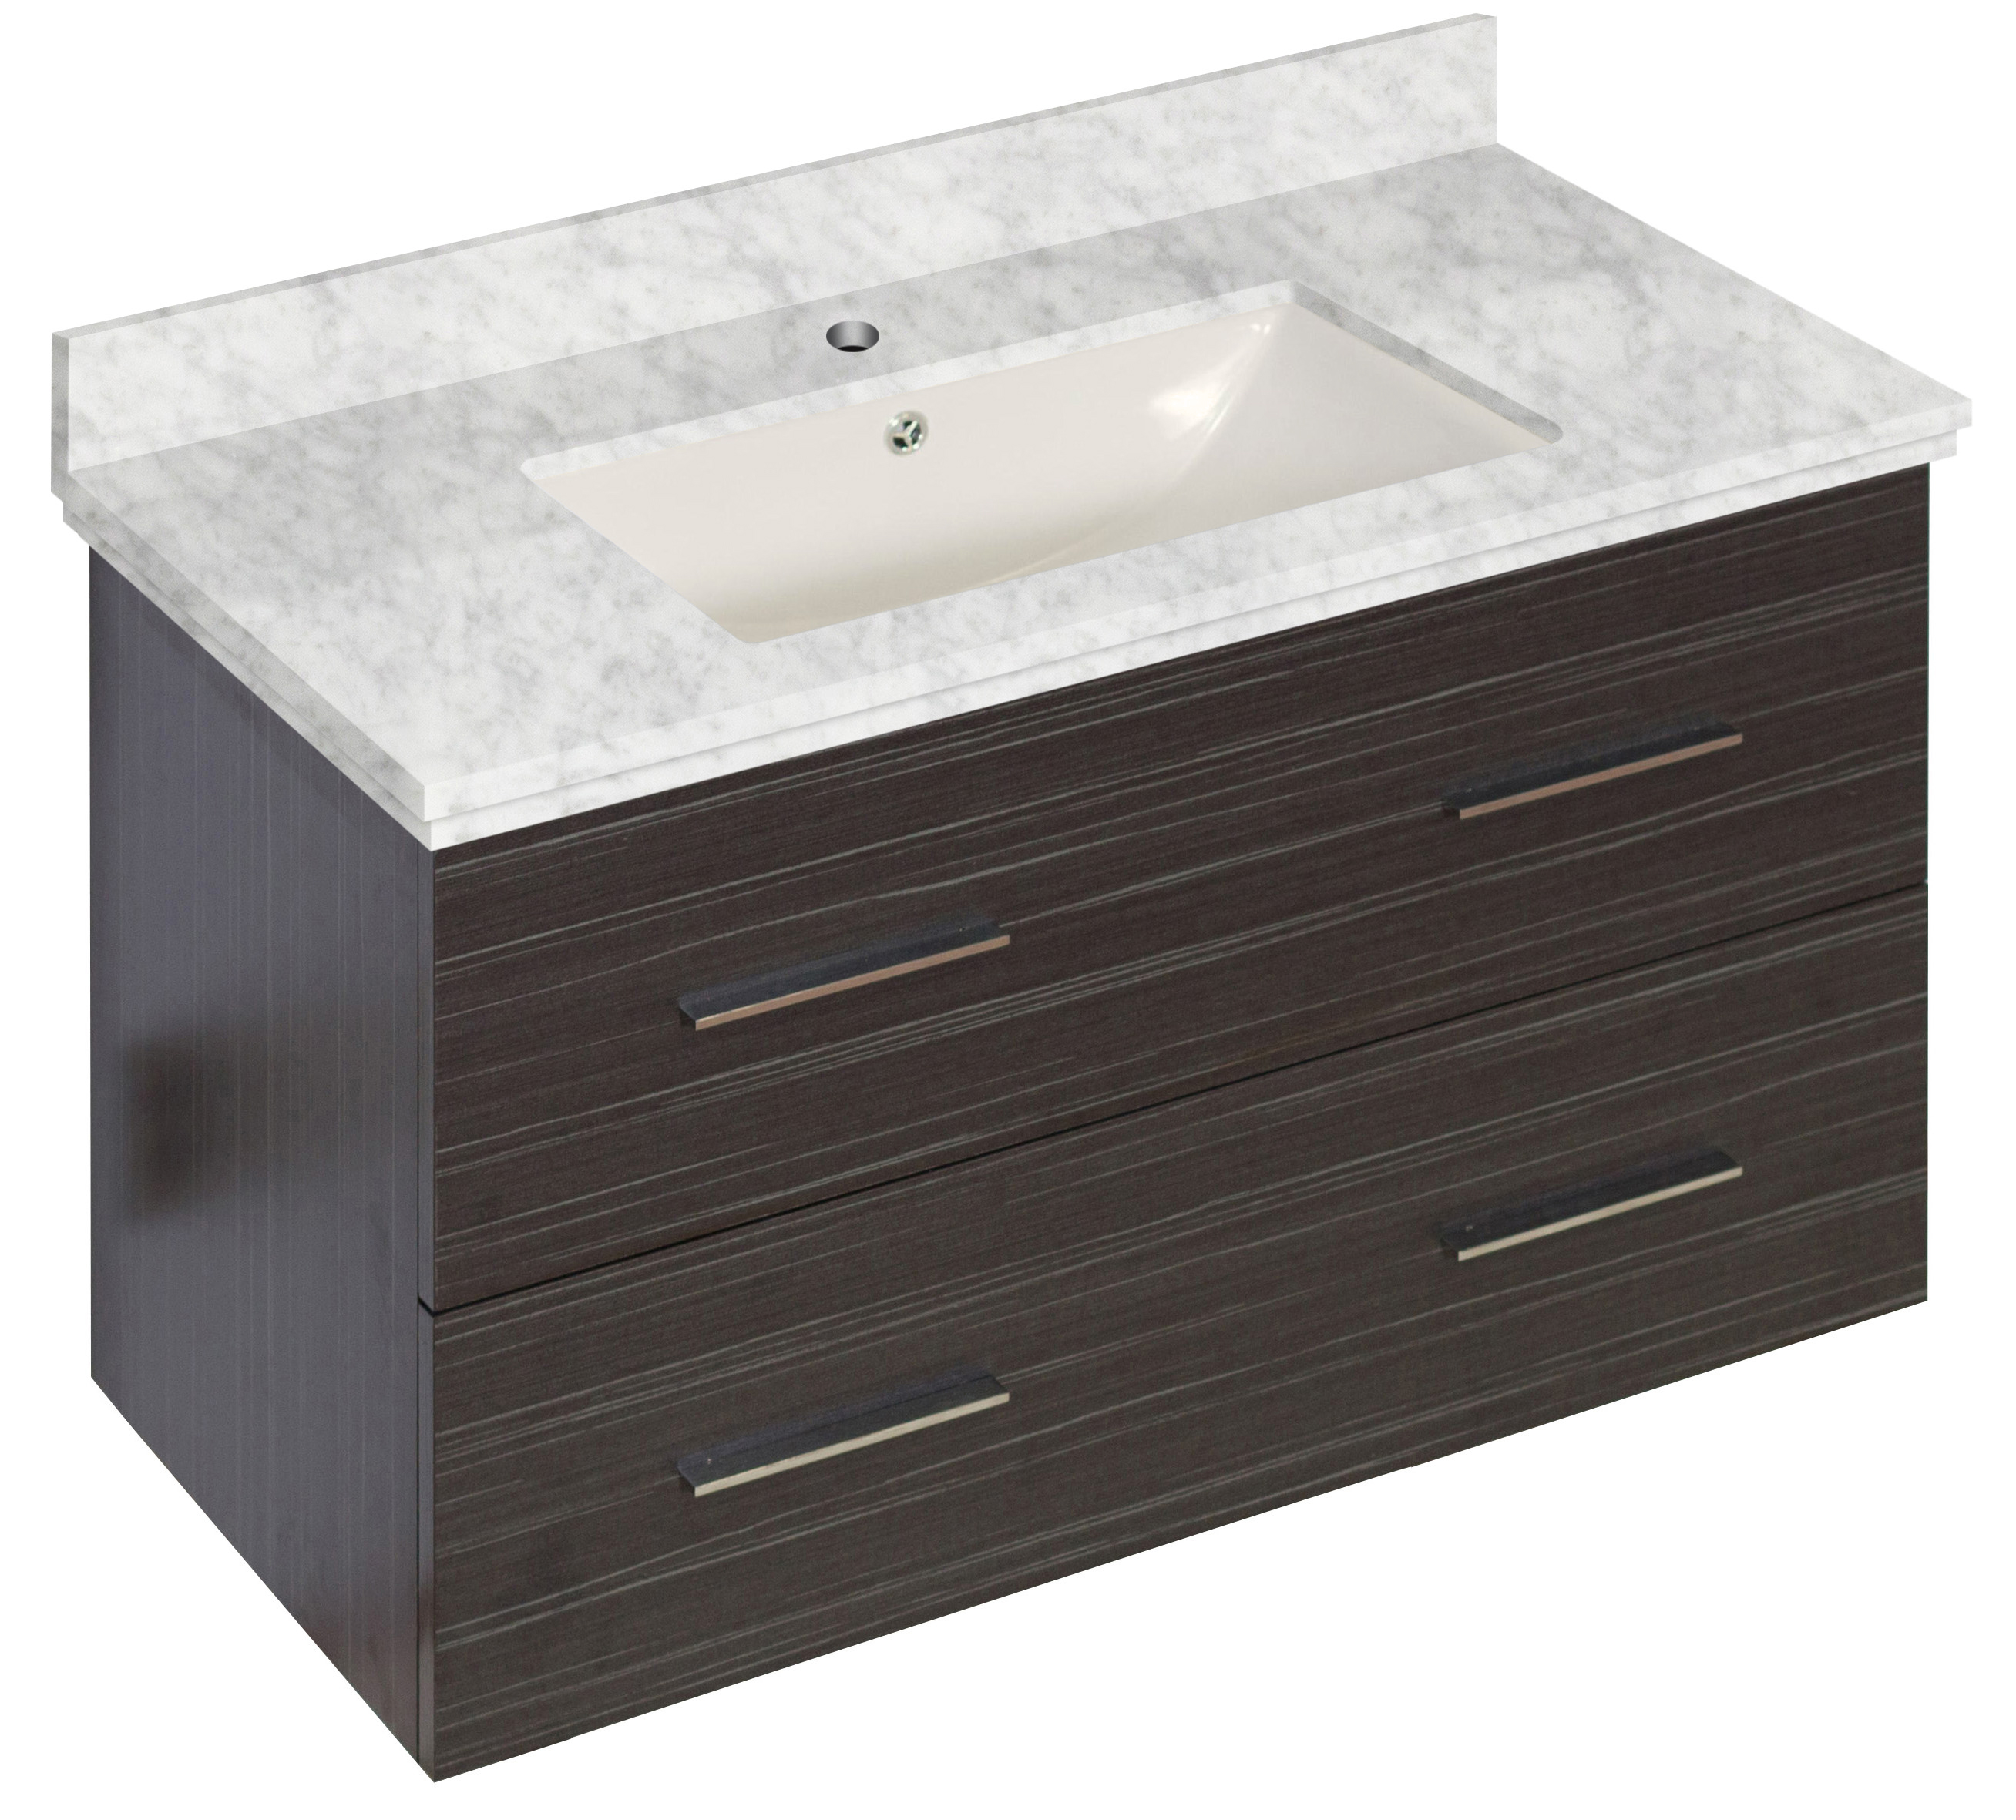 W Wall Mount Dawn Grey Vanity Set For 1 Hole Drilling Bianca Carara Top  Biscuit Um Sink #ai18632